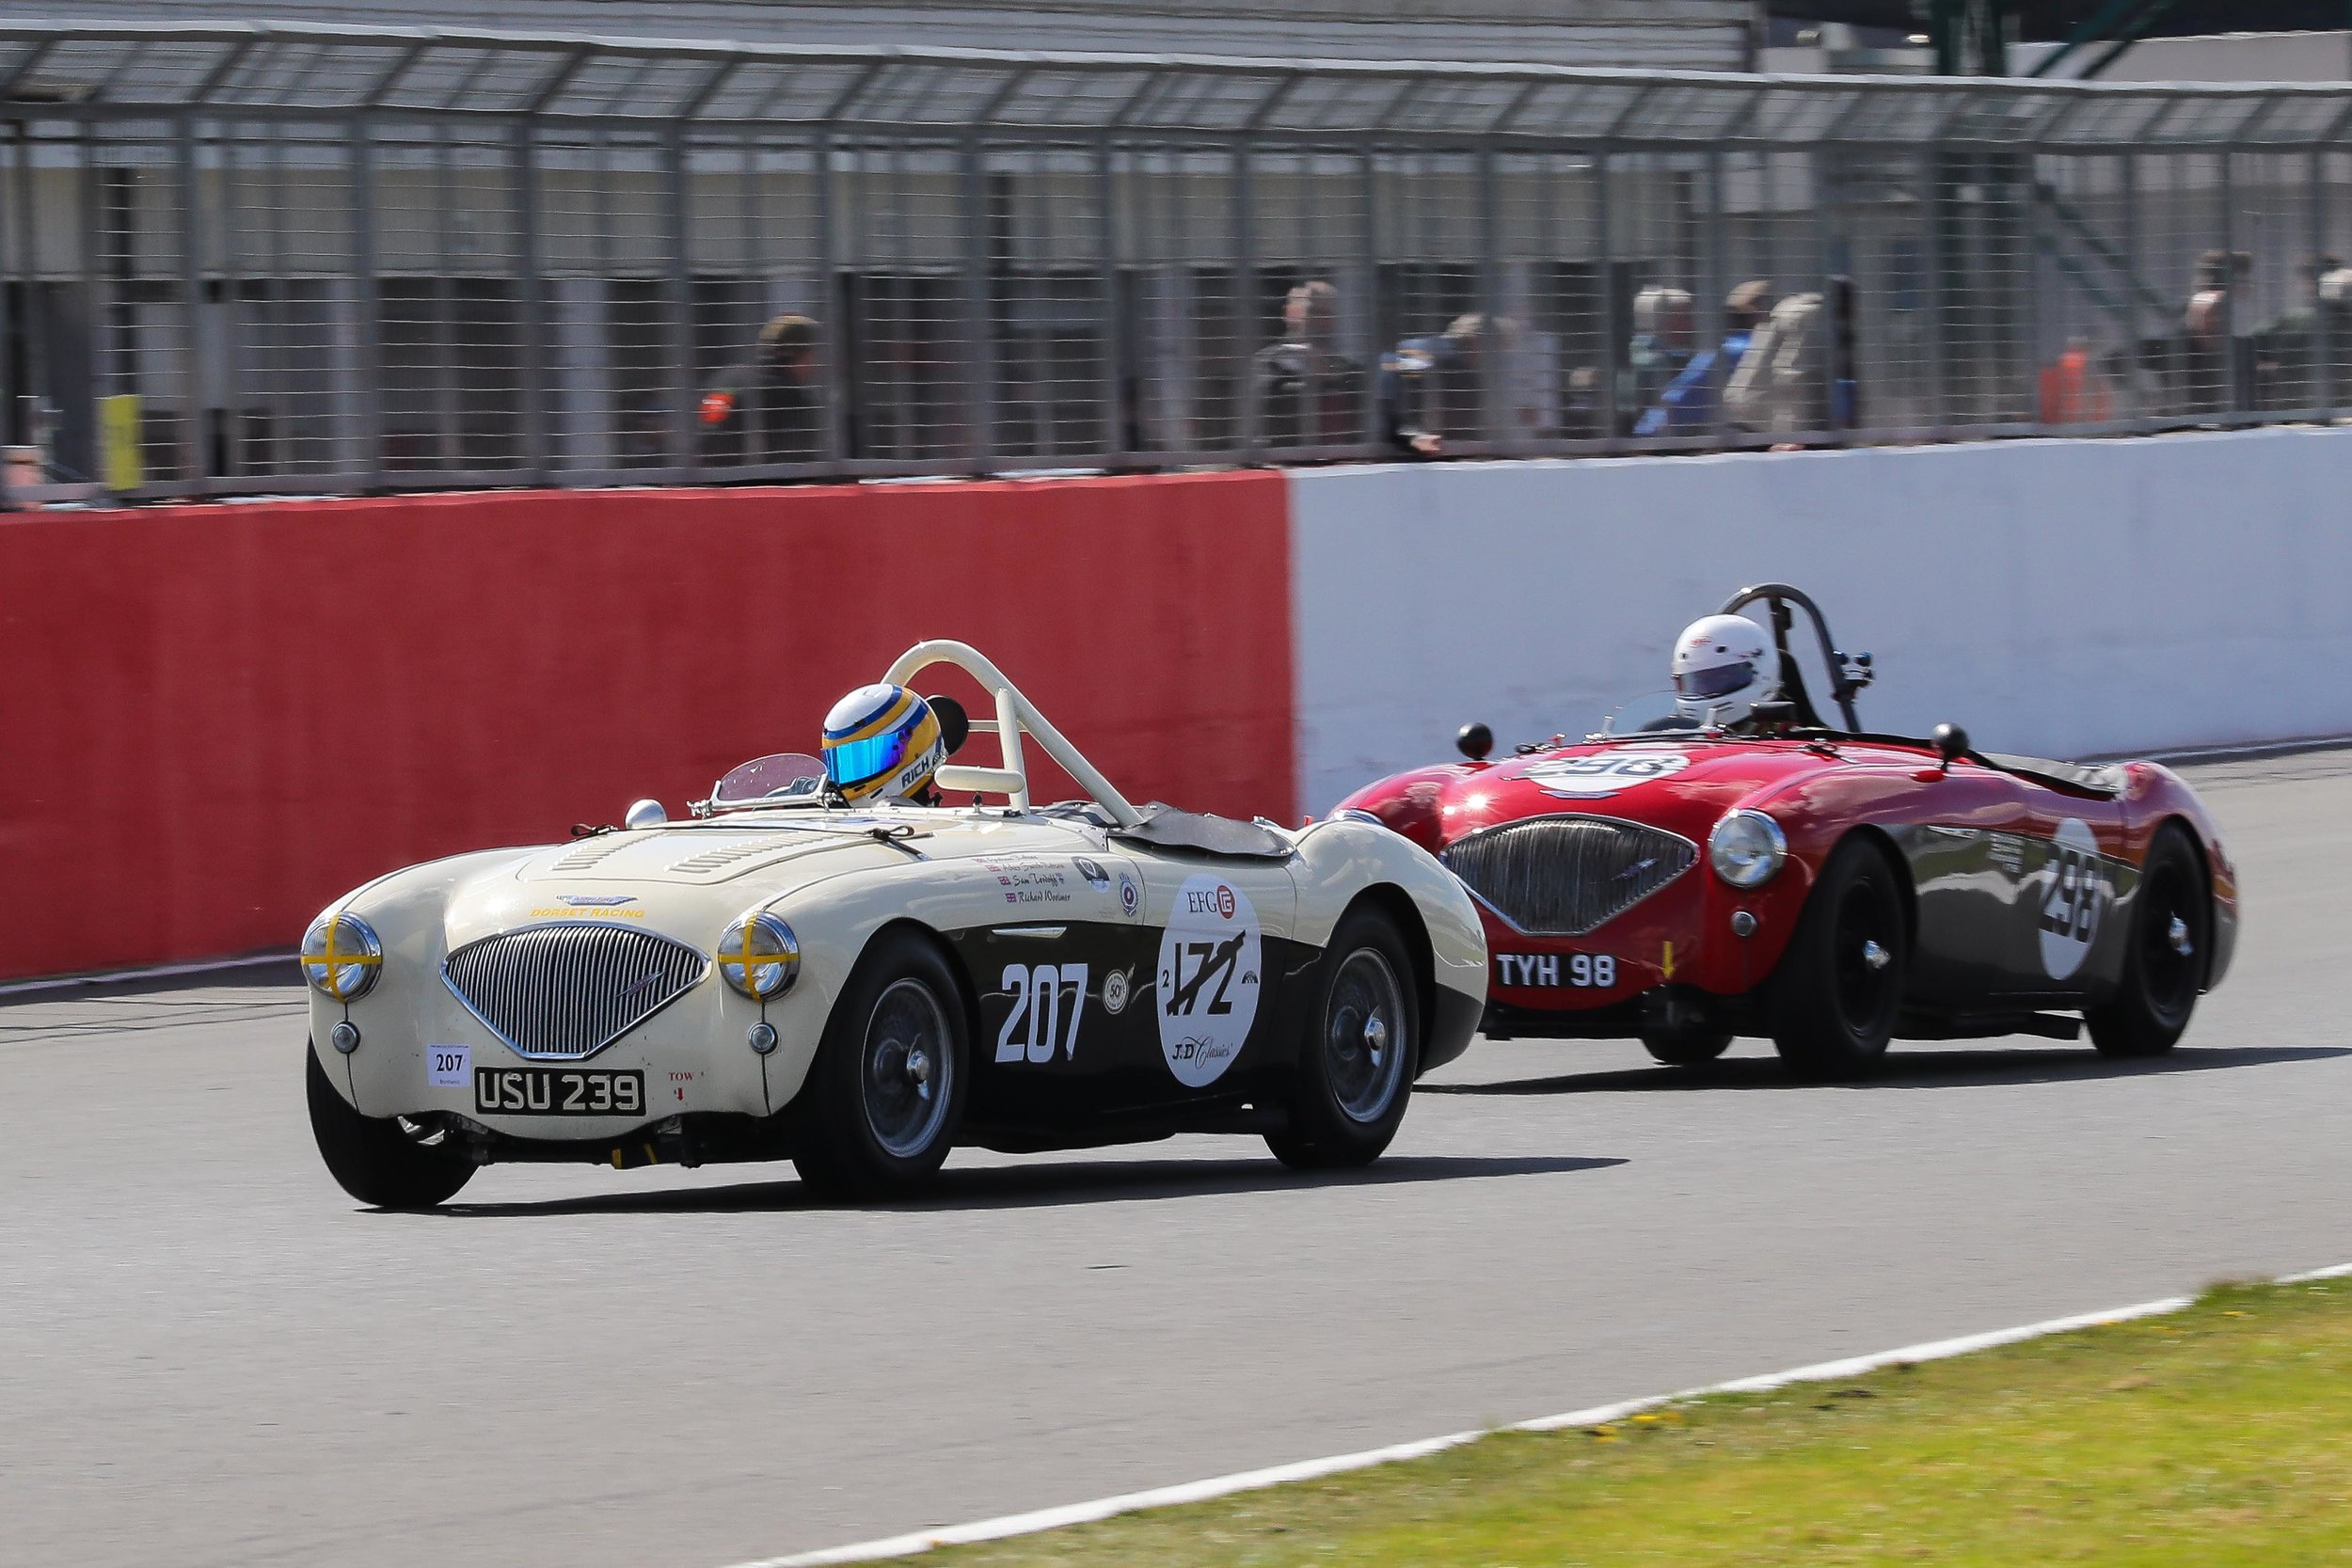 Richard Woolmer leads Nick Matthews in their great dice, before rear brake issues slowed the 207 car                       Photo - Richard Styles